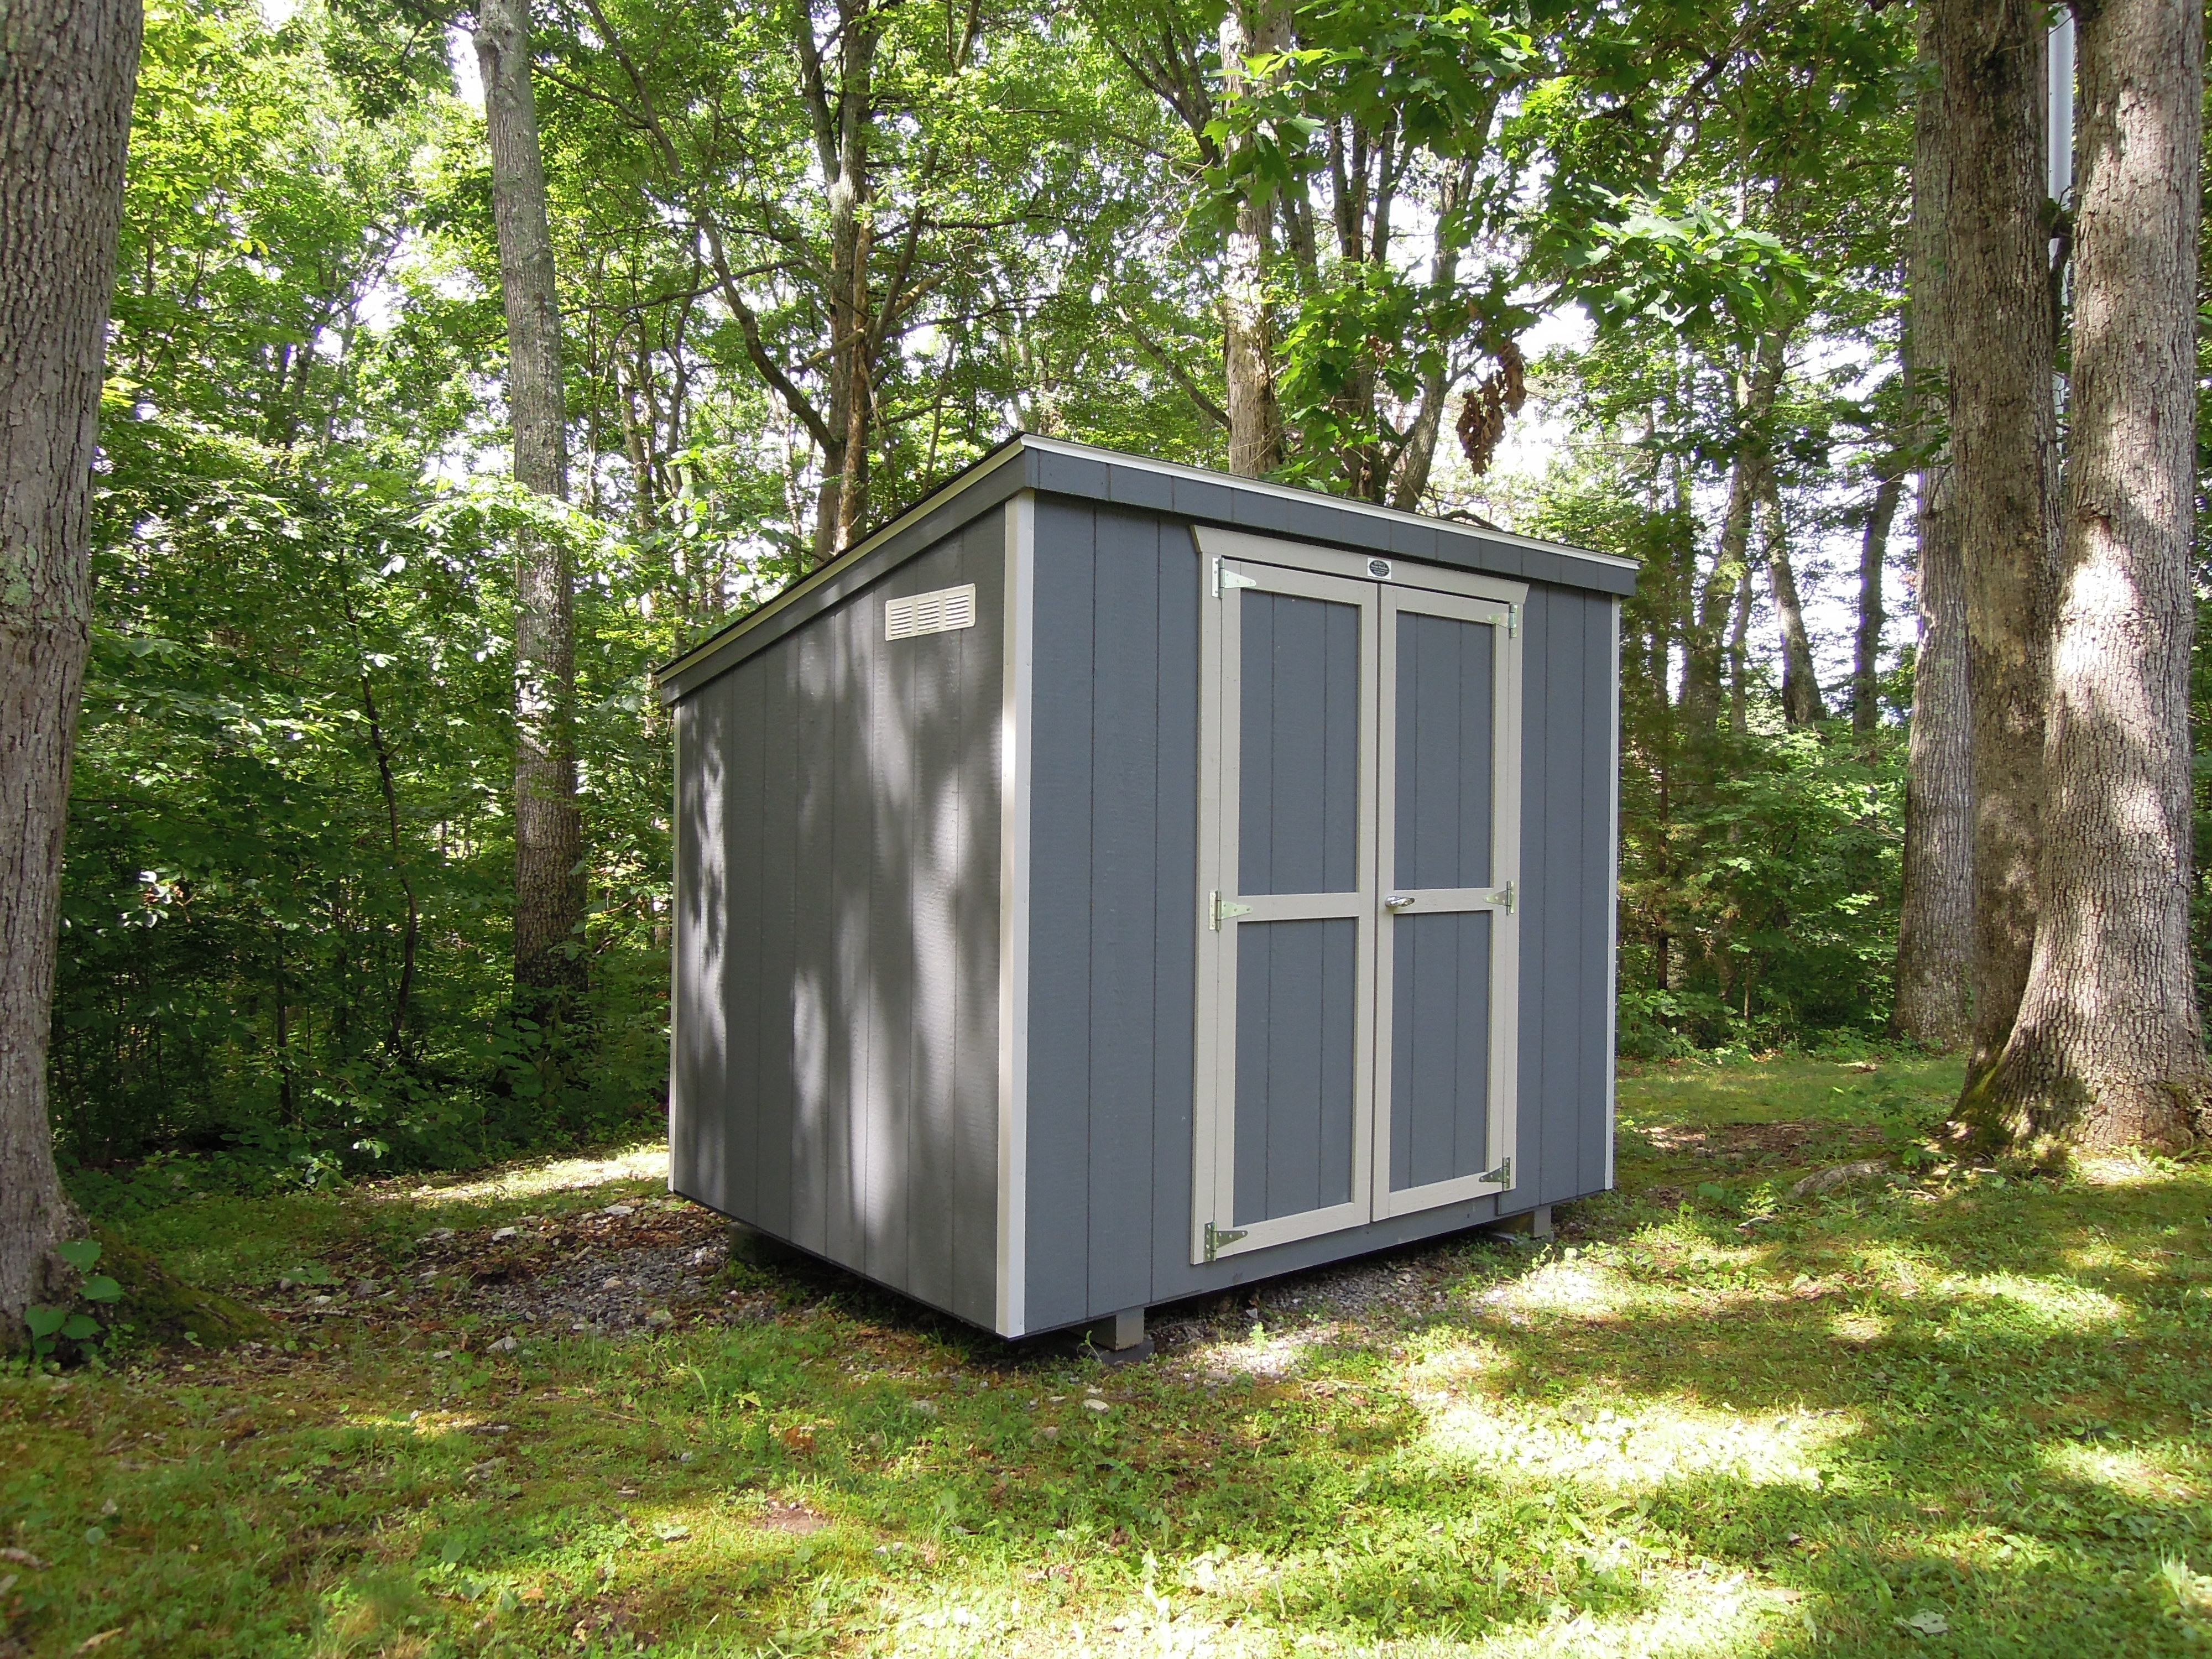 storage and offer in quality or metal tri portable options to out barns many schrock wood s finishes them sizes outdoor buildings today from sale woodshop for check stop schrocks choose state painted cabin styles the colors